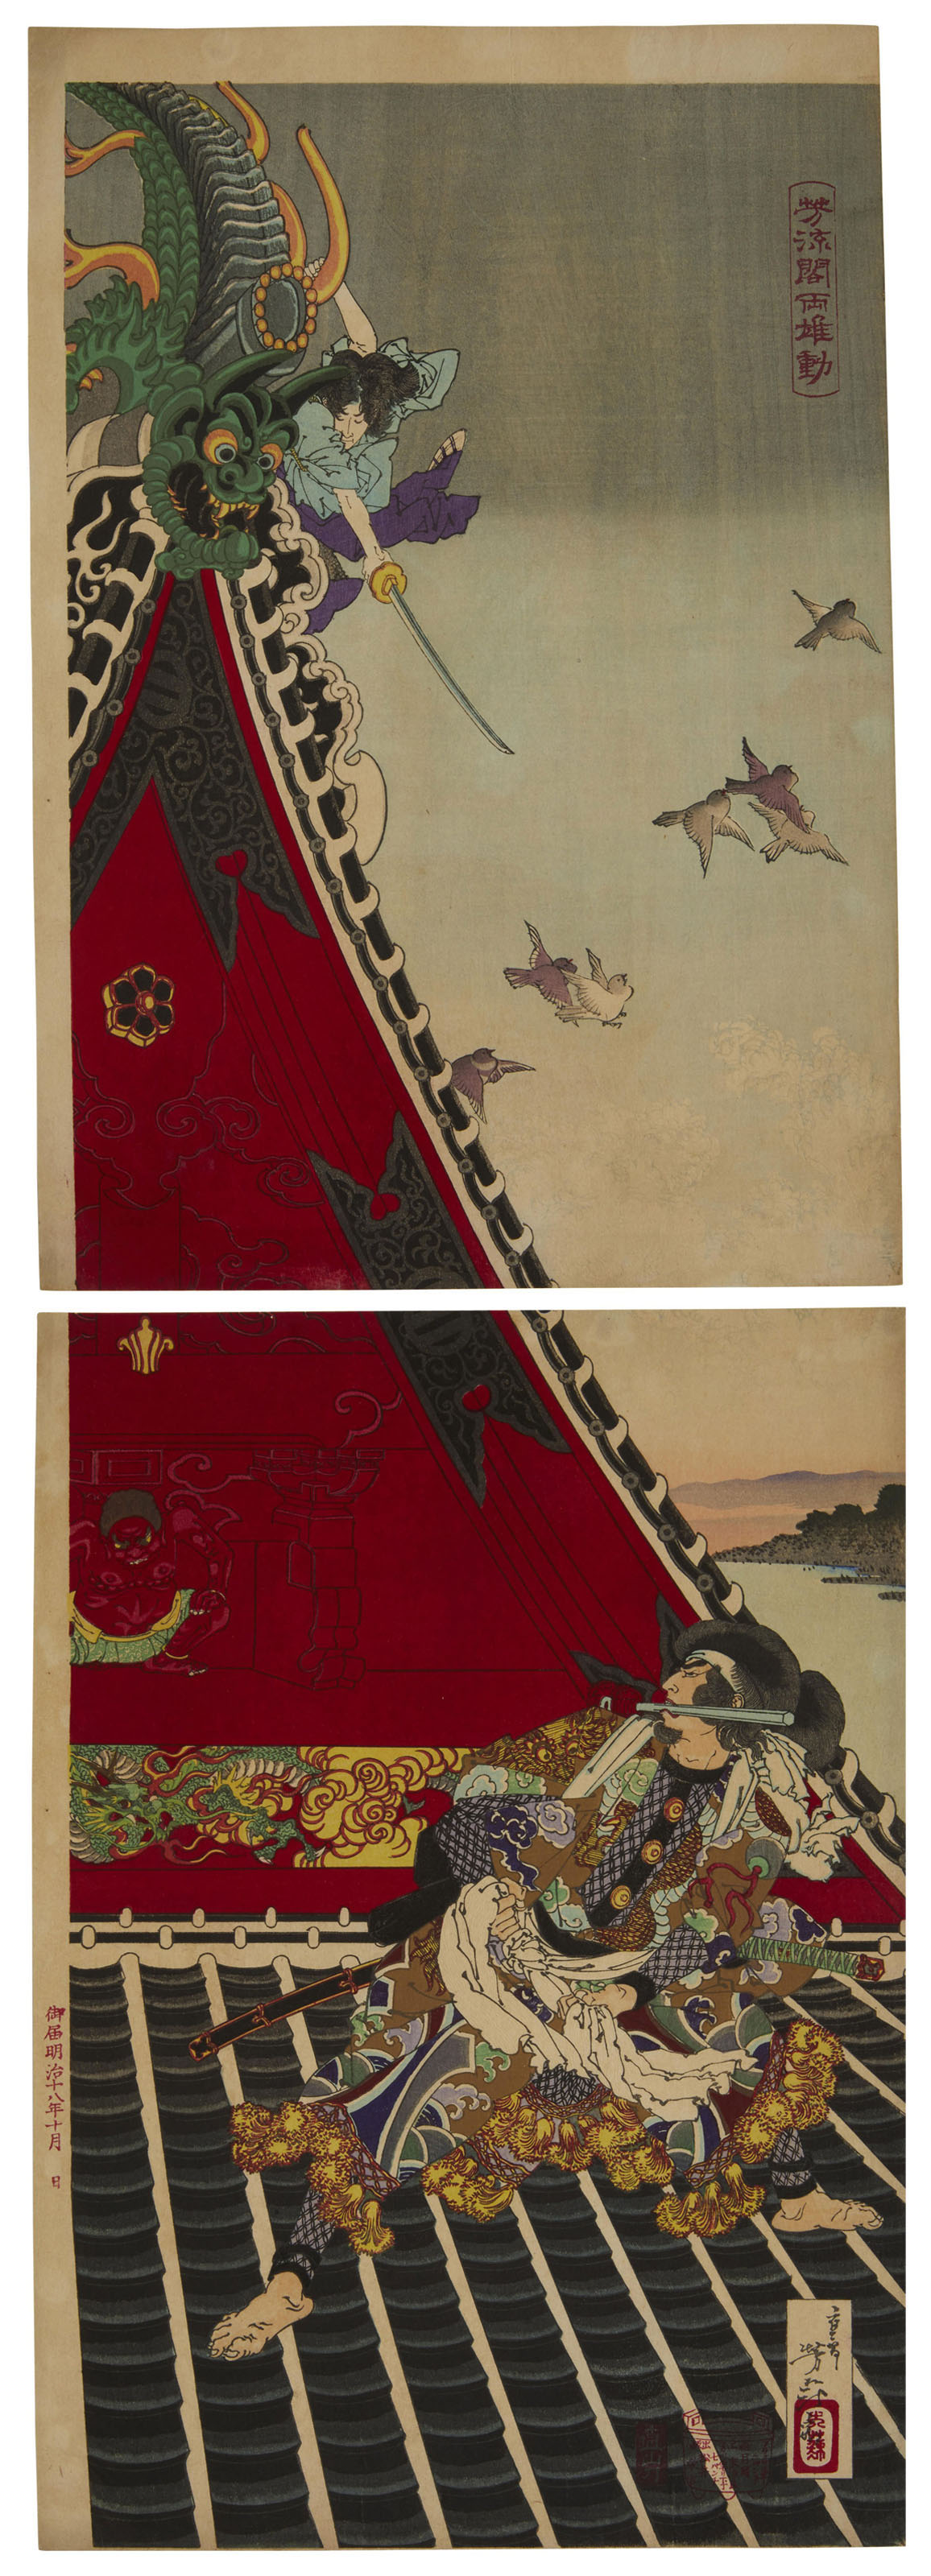 Horyukaku ryoyu tsutomu (Two brave men on the roof of Horyukaku)